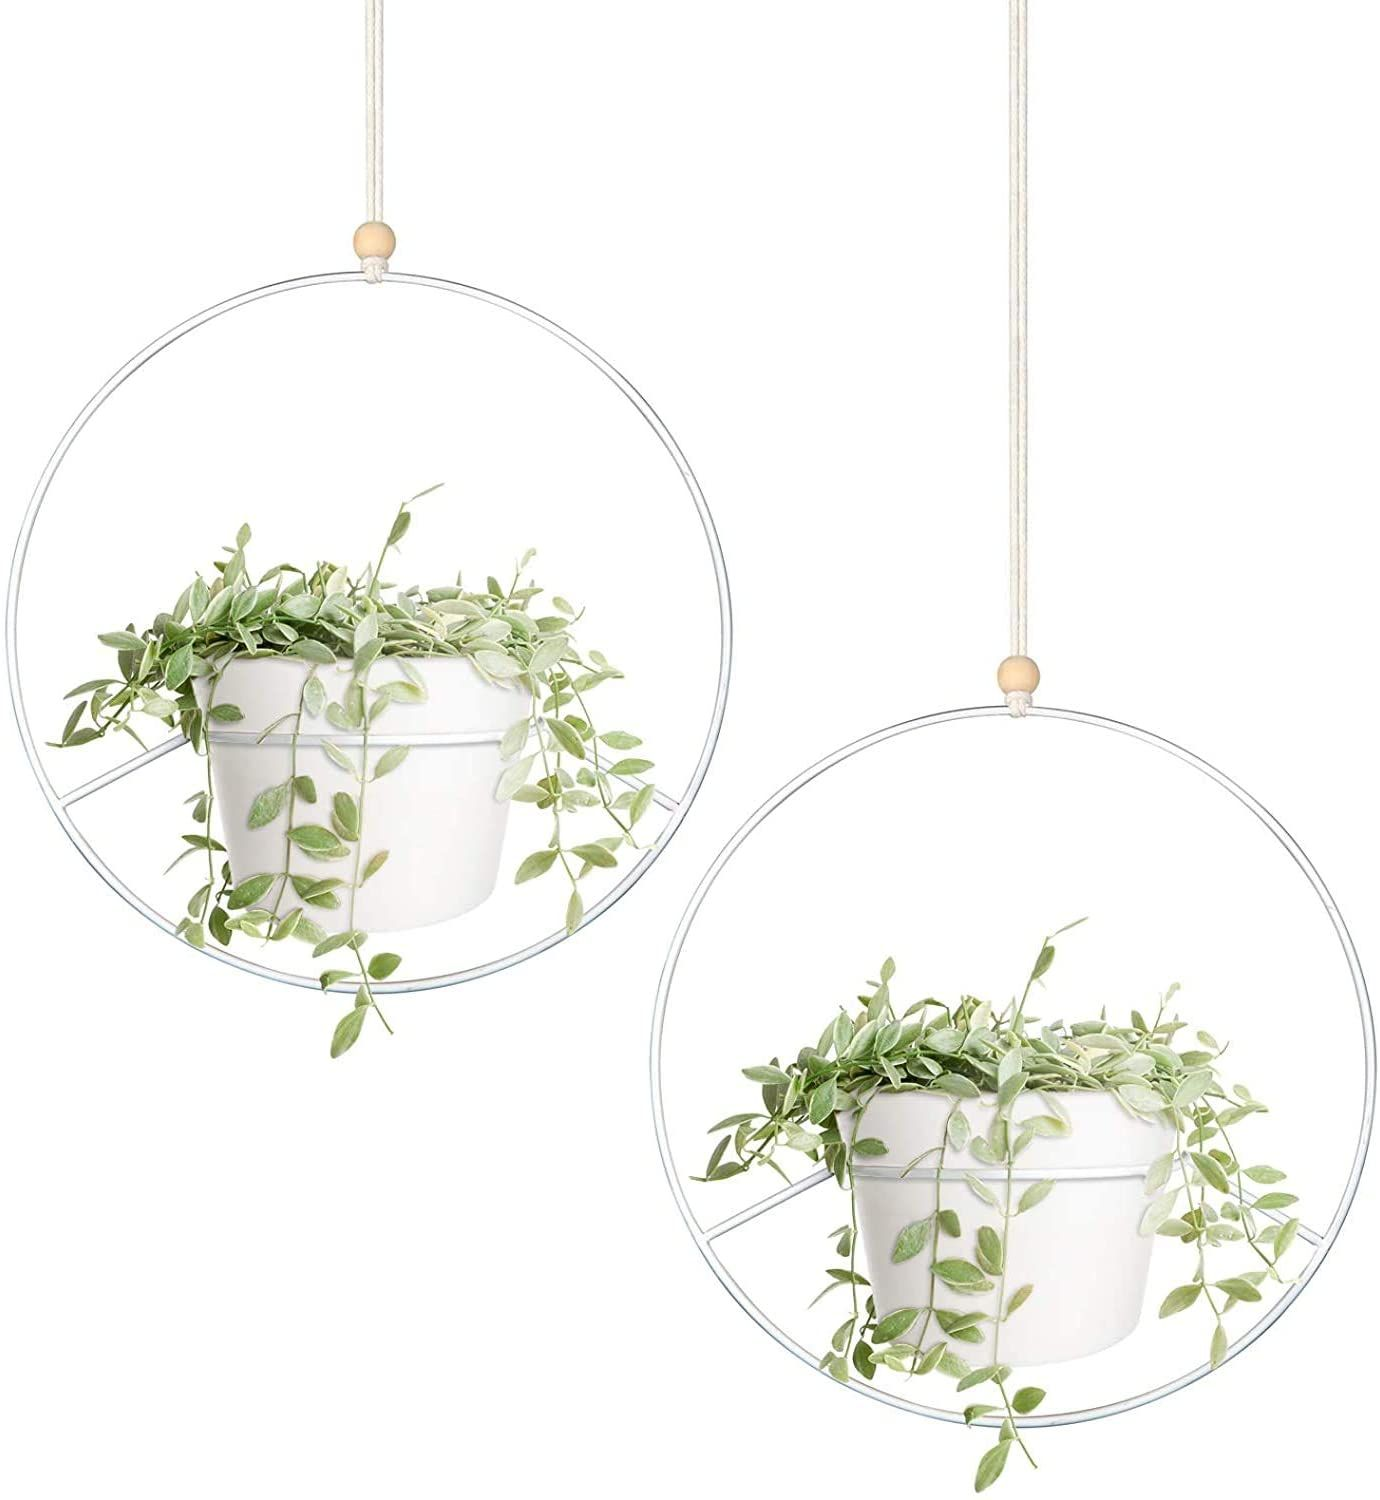 Mkouo Boho Hanging Planter Set Of 2 Round Metal Plant Hanger With Plastic Plant Pot Modern Wall And Ceiling Planter Mid Century Flower Pot Holder Fits 15cm P In 2020